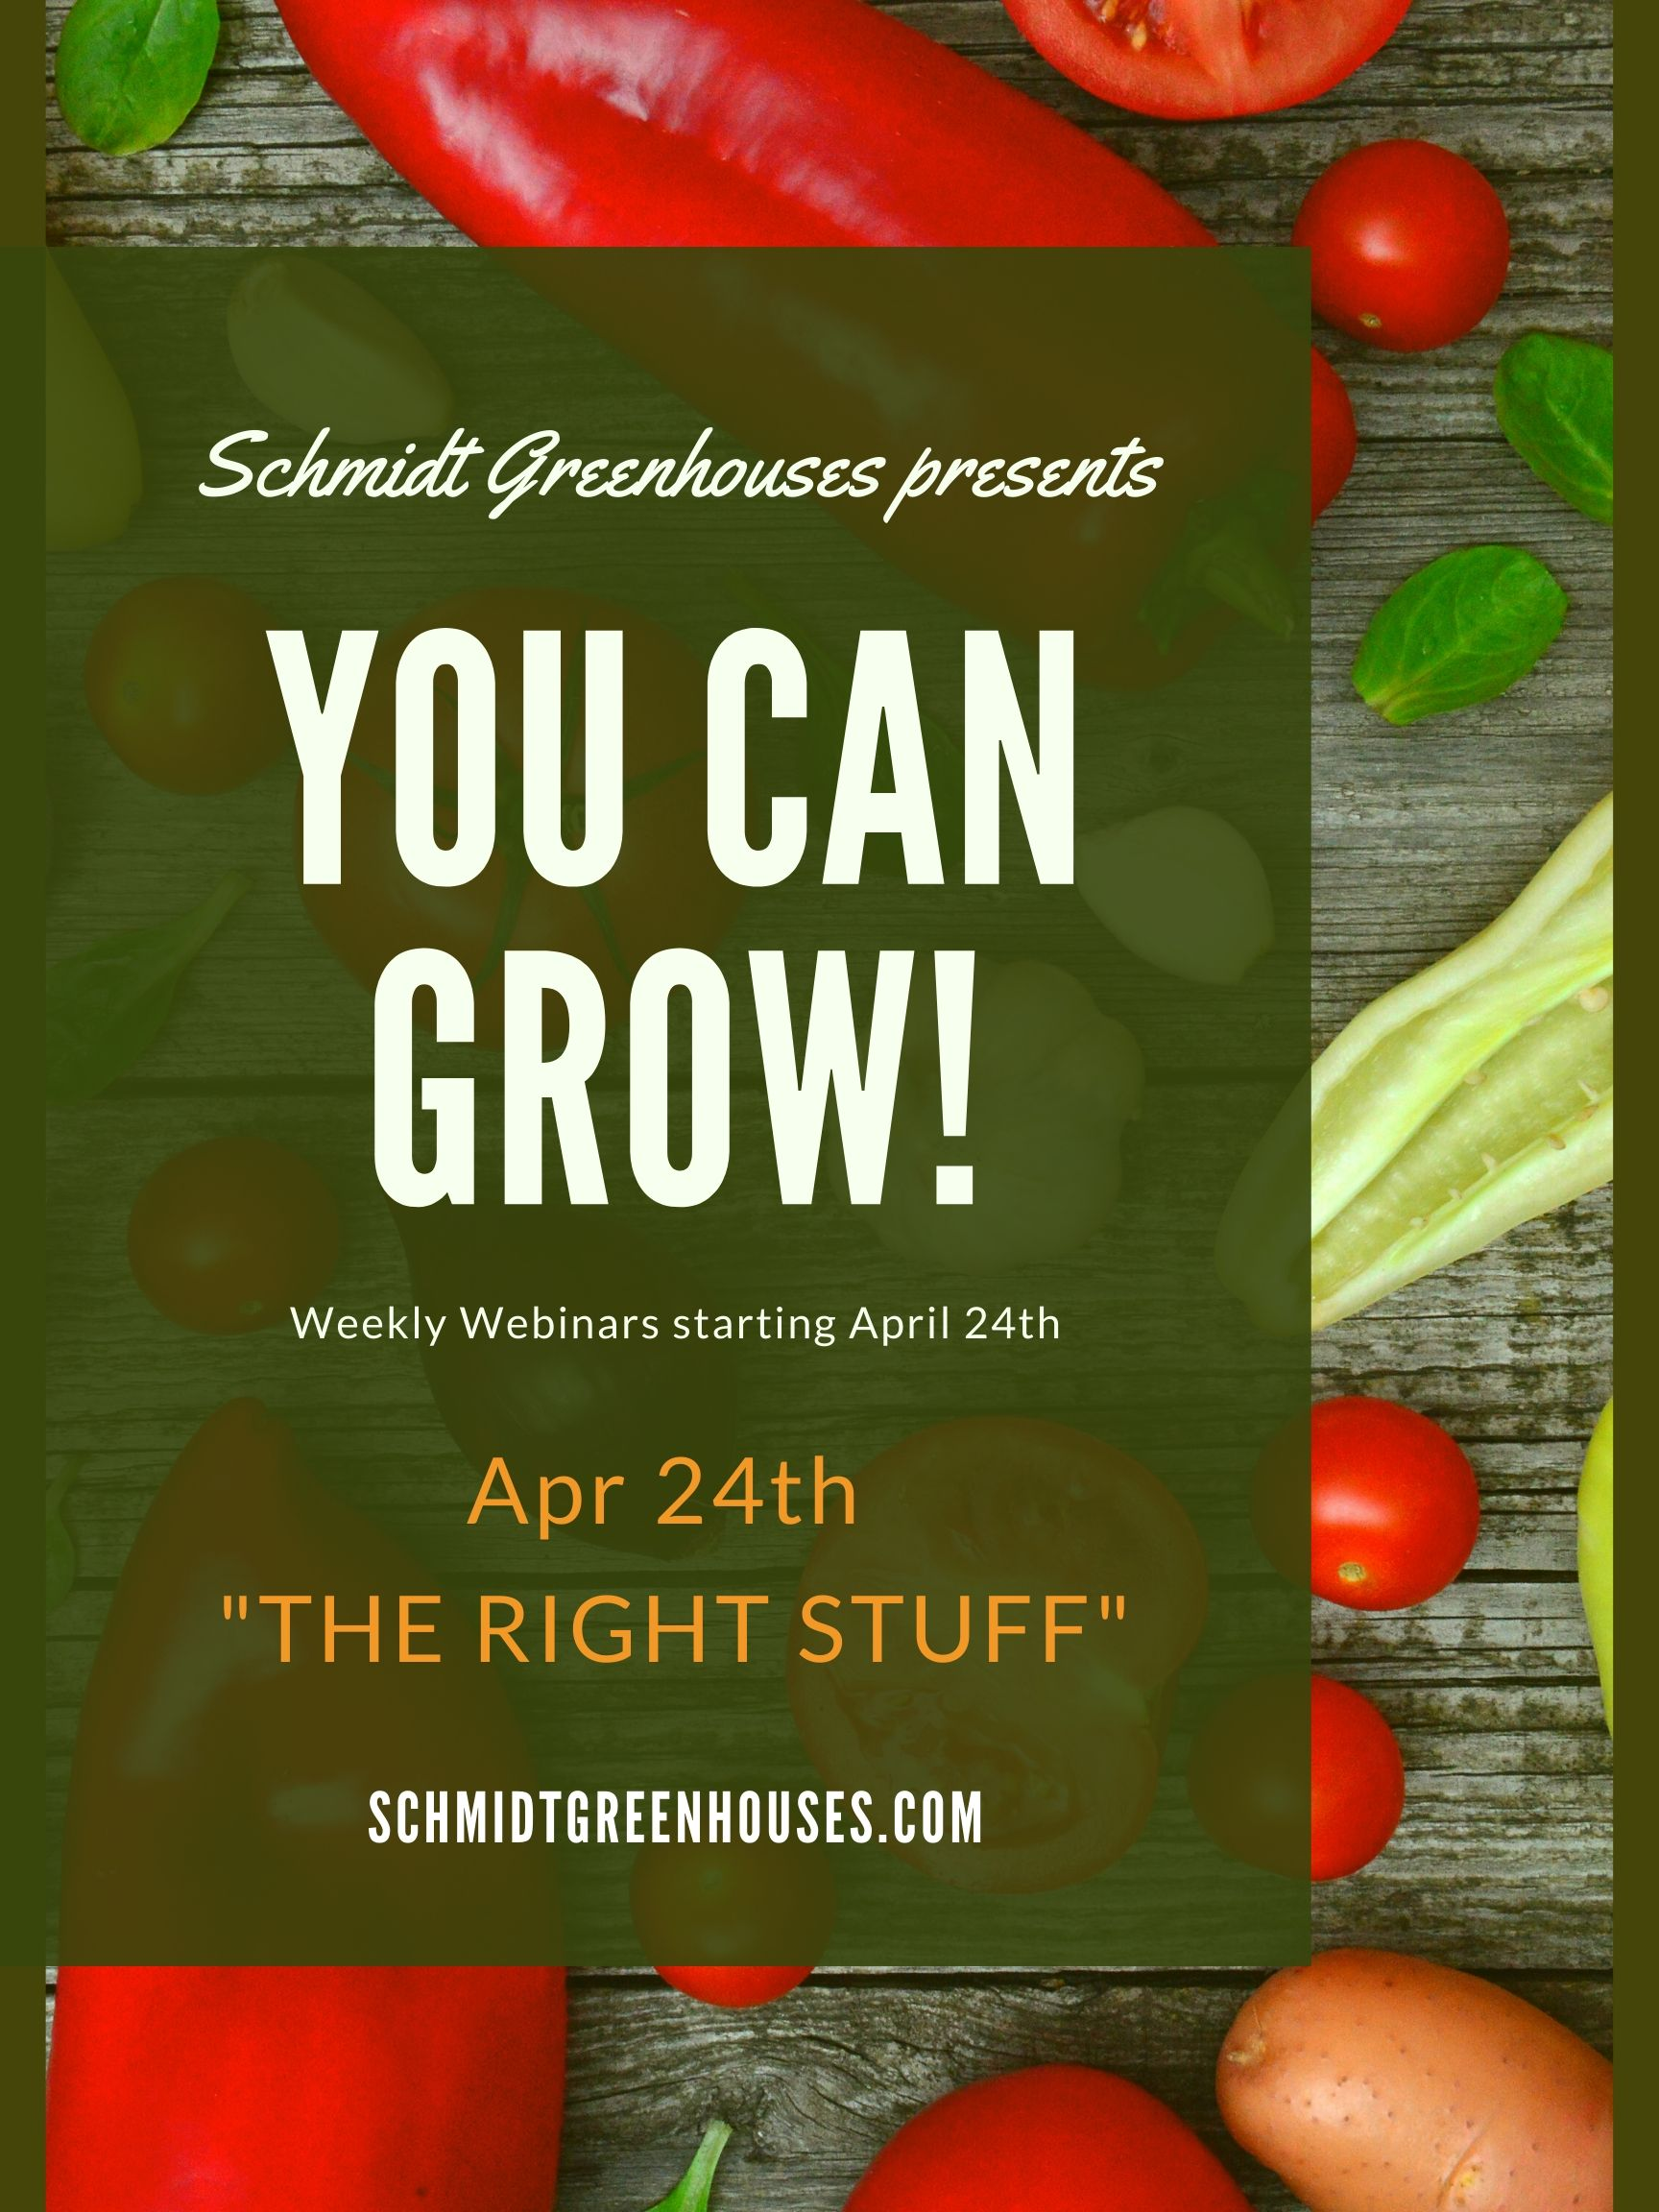 New to Gardening?  Check out our introductory videos from last spring!